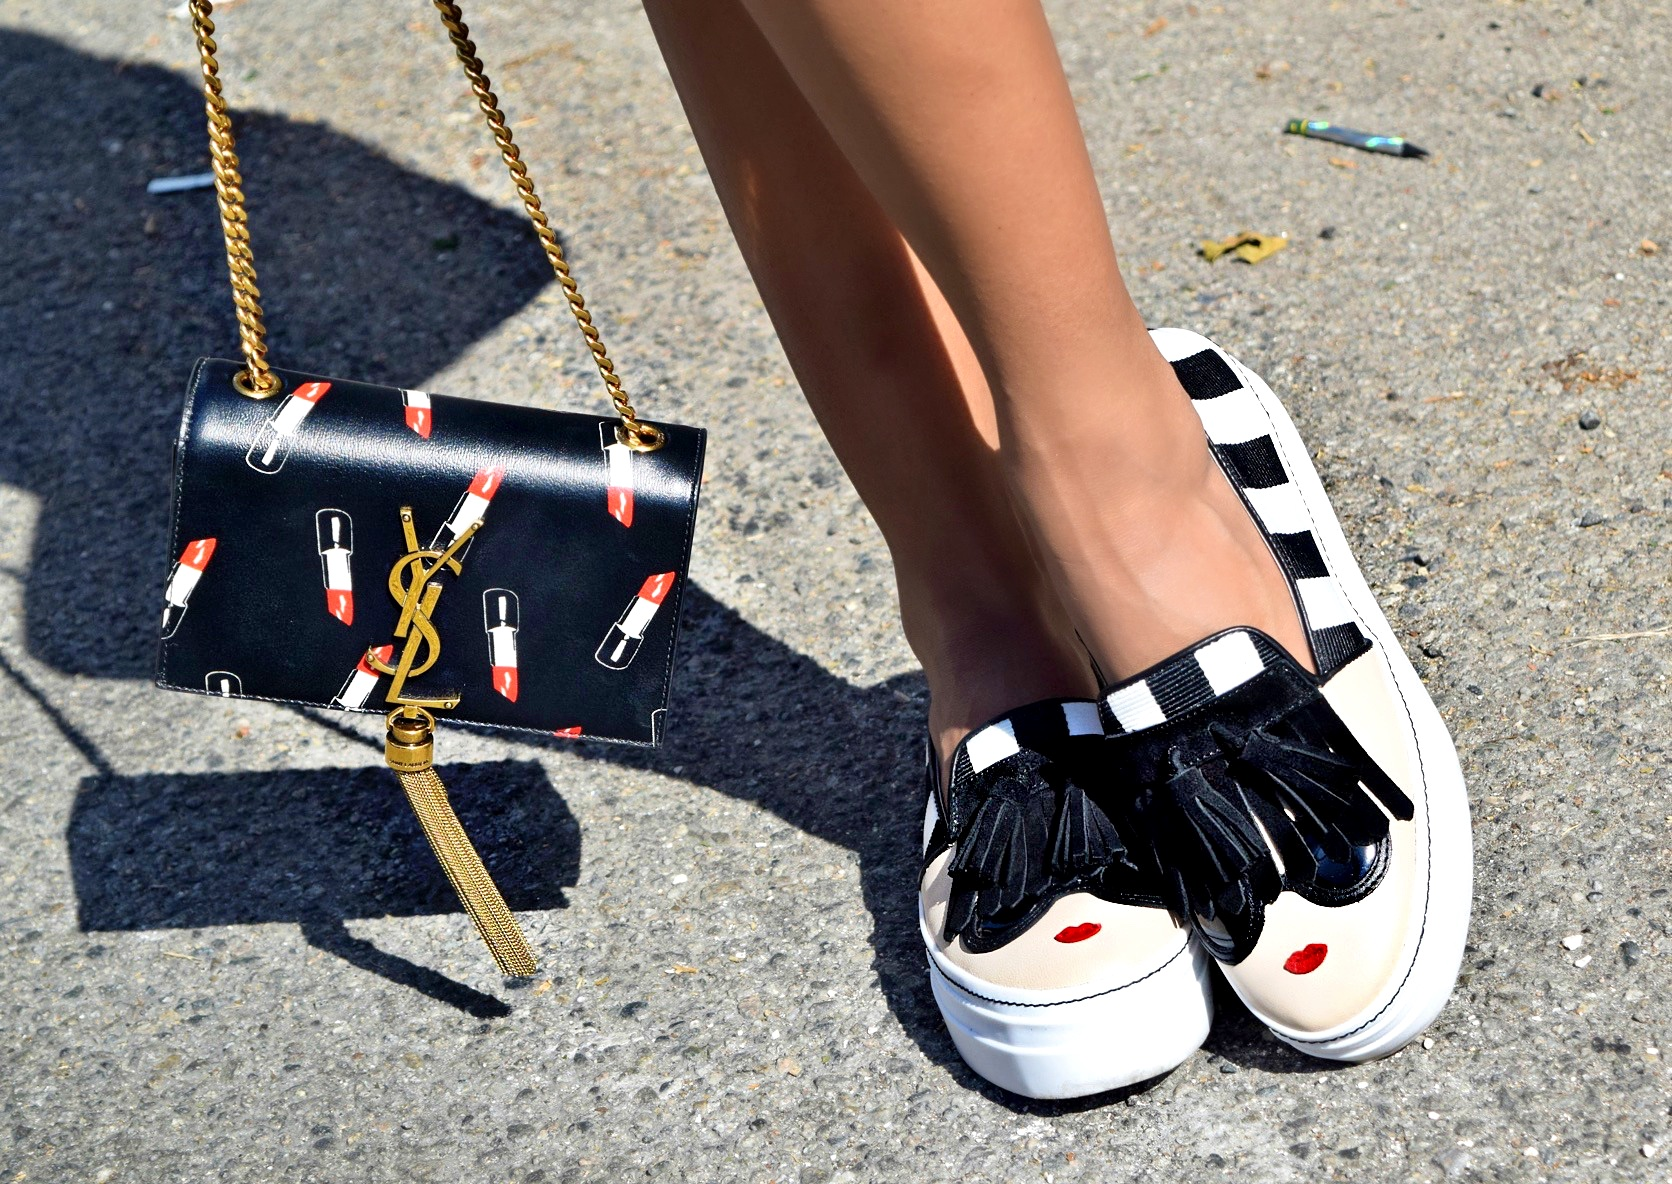 Saint Laurent Lipstick Bag and Alice + Olivia Stacey Sneakers Details Shot: To Style, With Love